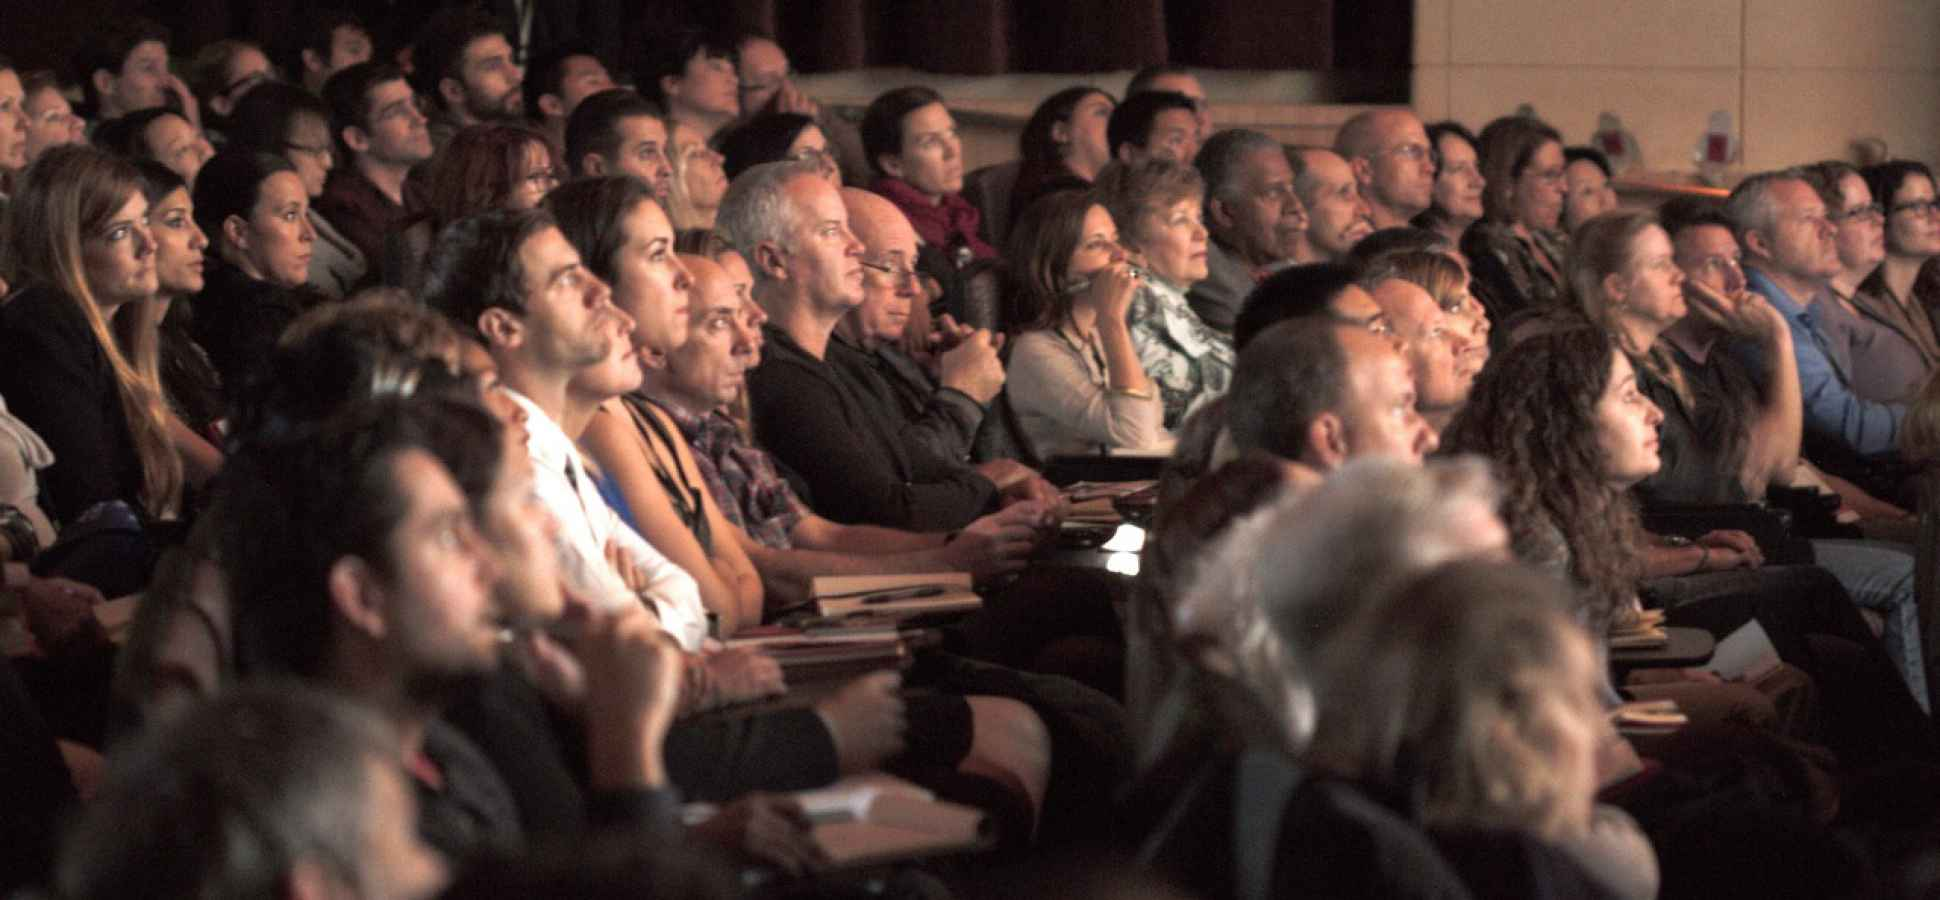 10 Ways Great Speakers Capture People's Attention